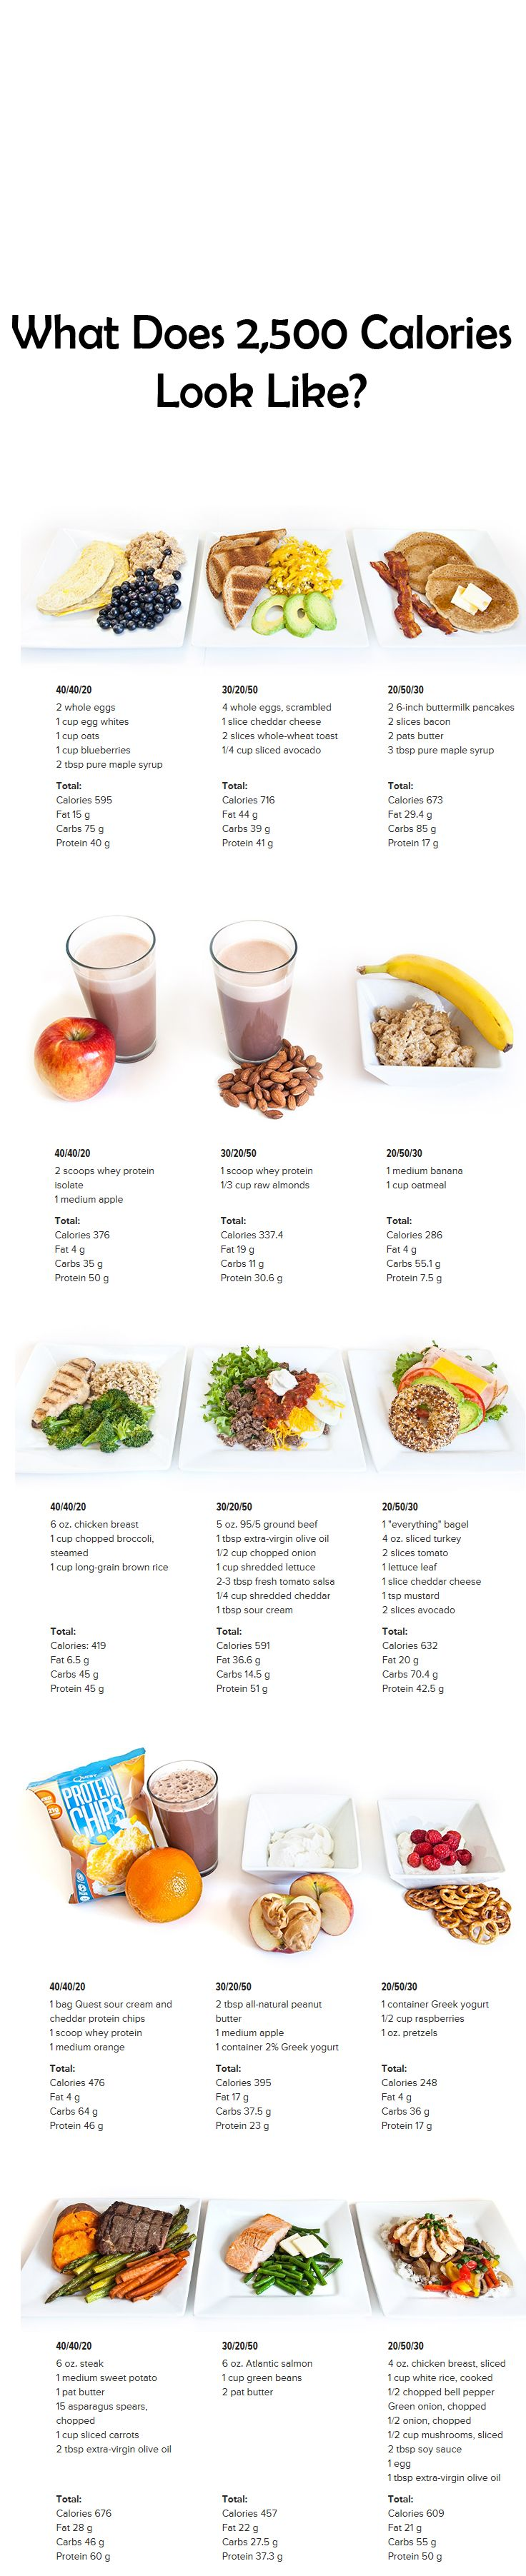 Gallbladder Healthy Diet